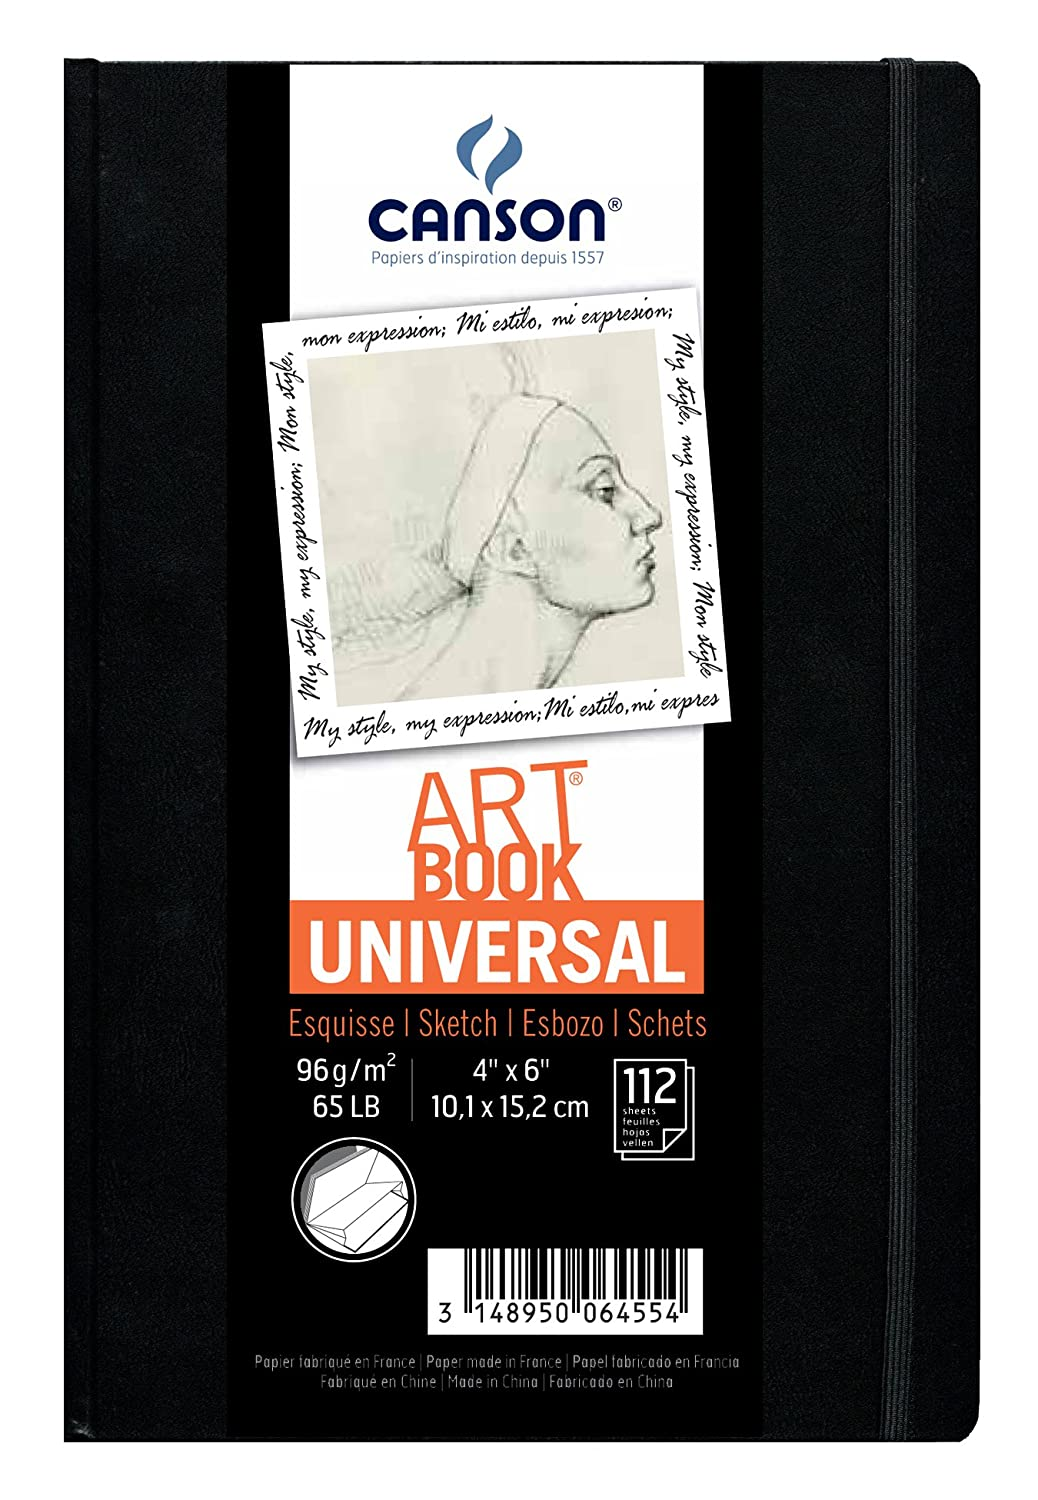 Canson Universal Art Book, Blank Acid Free Paper with Pocket, Elastic Closure and Stitch Binding, Hardbound, 65 Pound, 4 x 6 Inch, 112 Sheets Canson Inc. 200006455